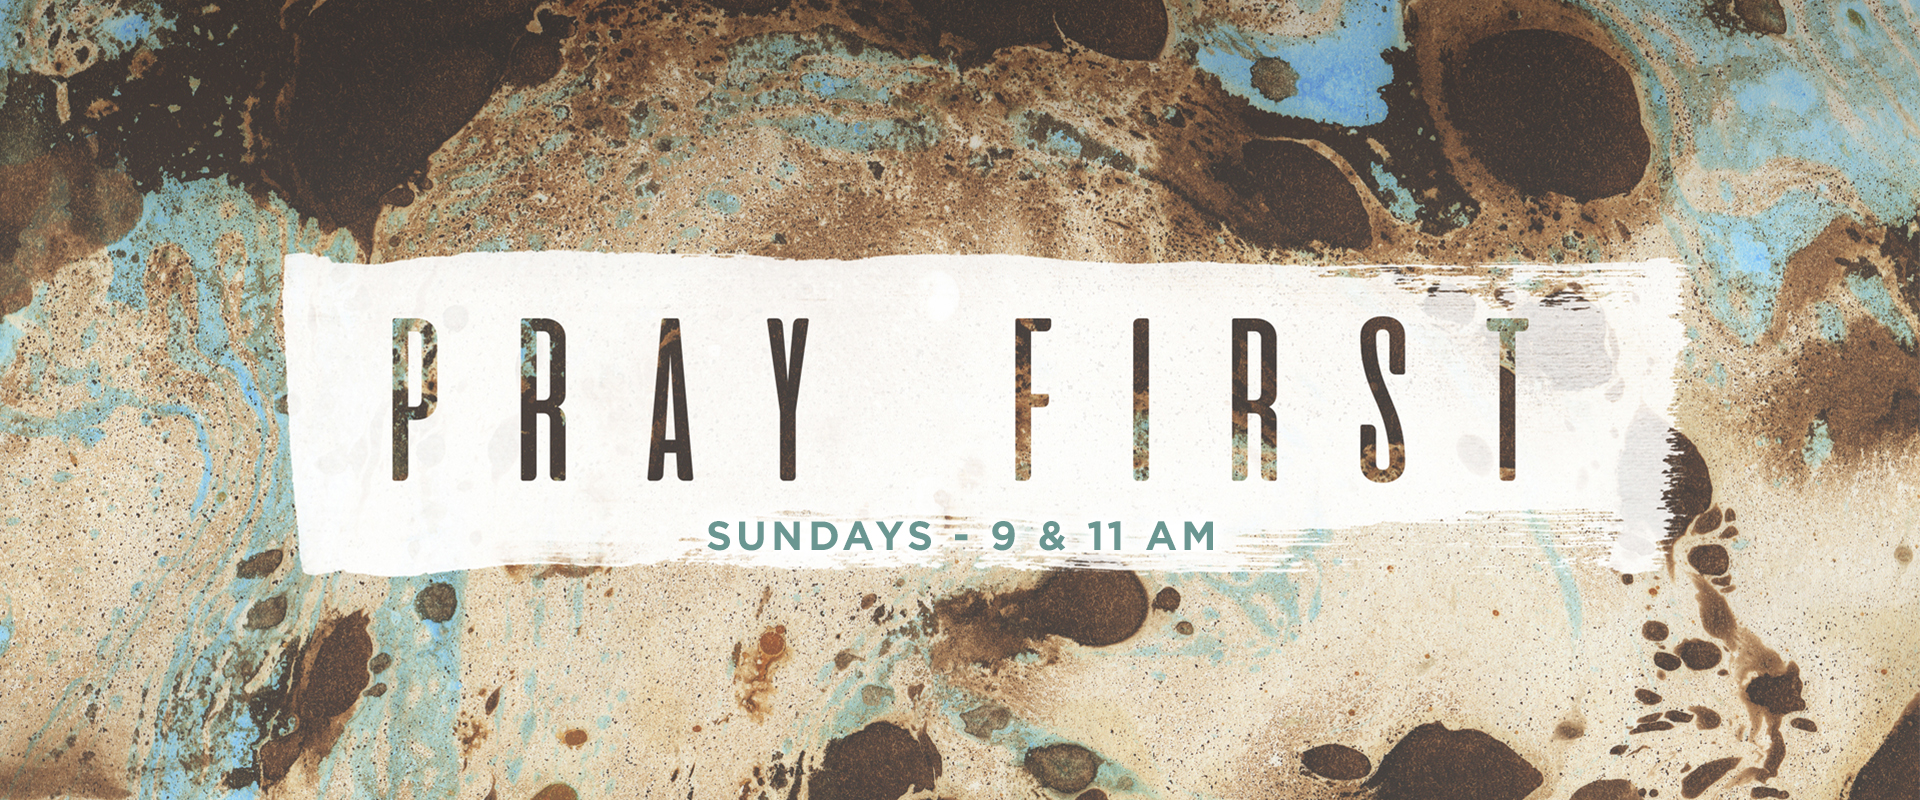 Pray First - Fall 2019 Message Series